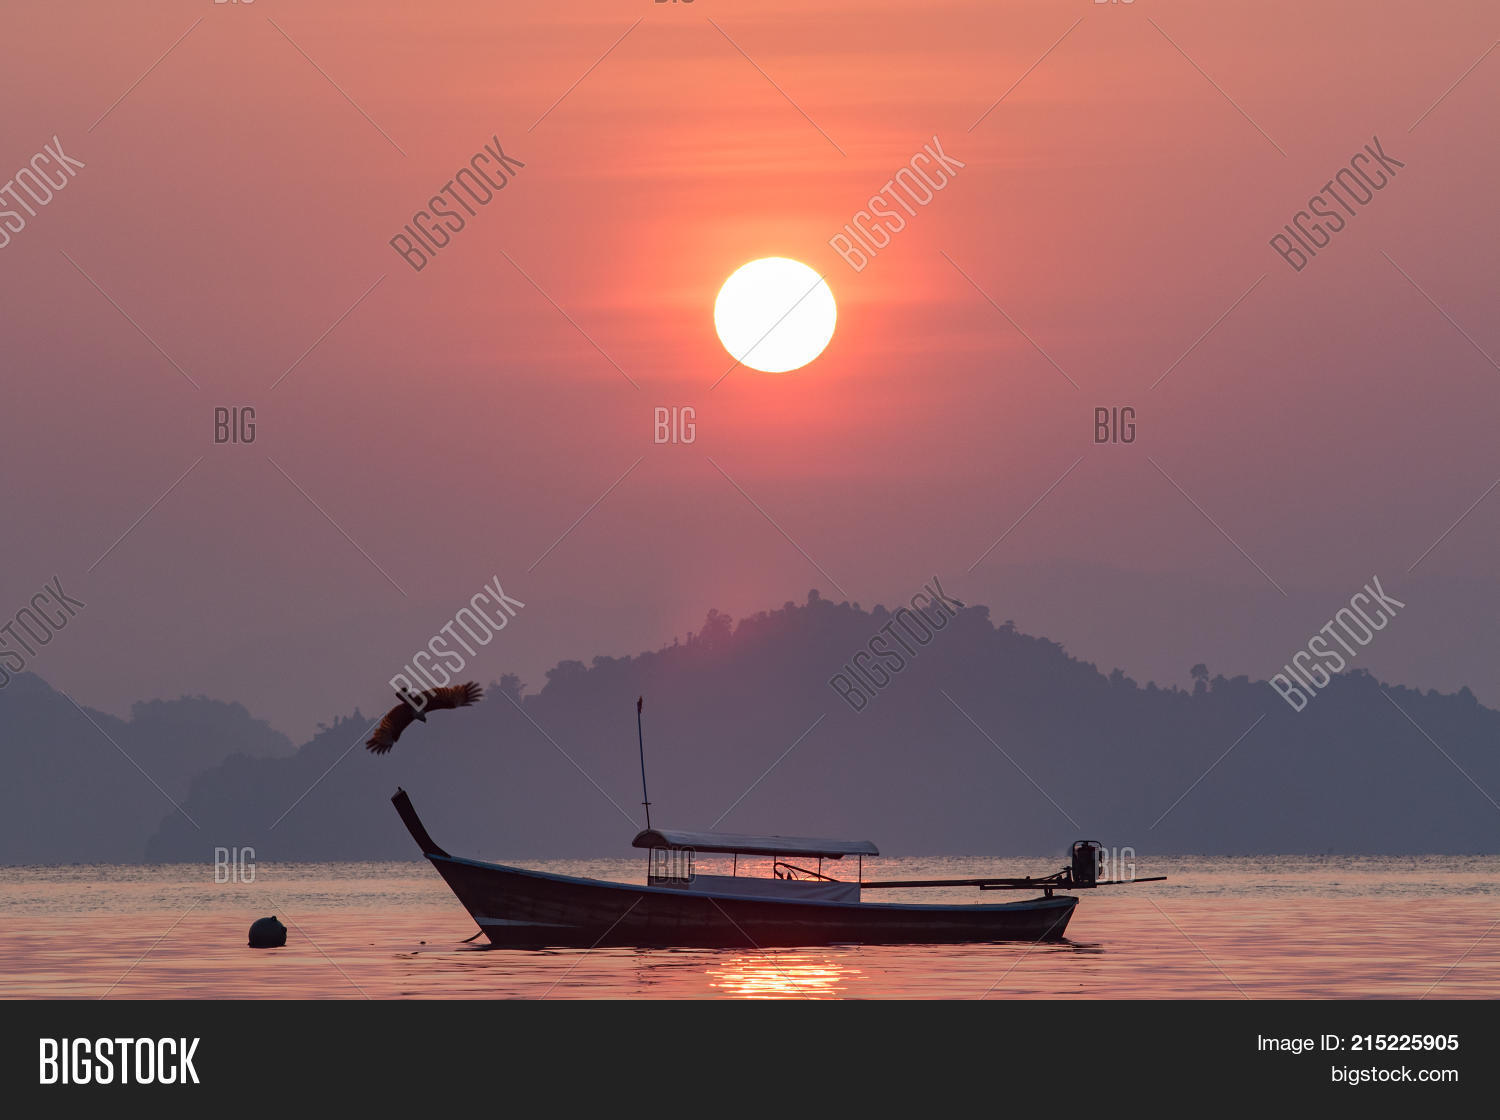 Beautiful Sun Rising Image Photo Free Trial Bigstock